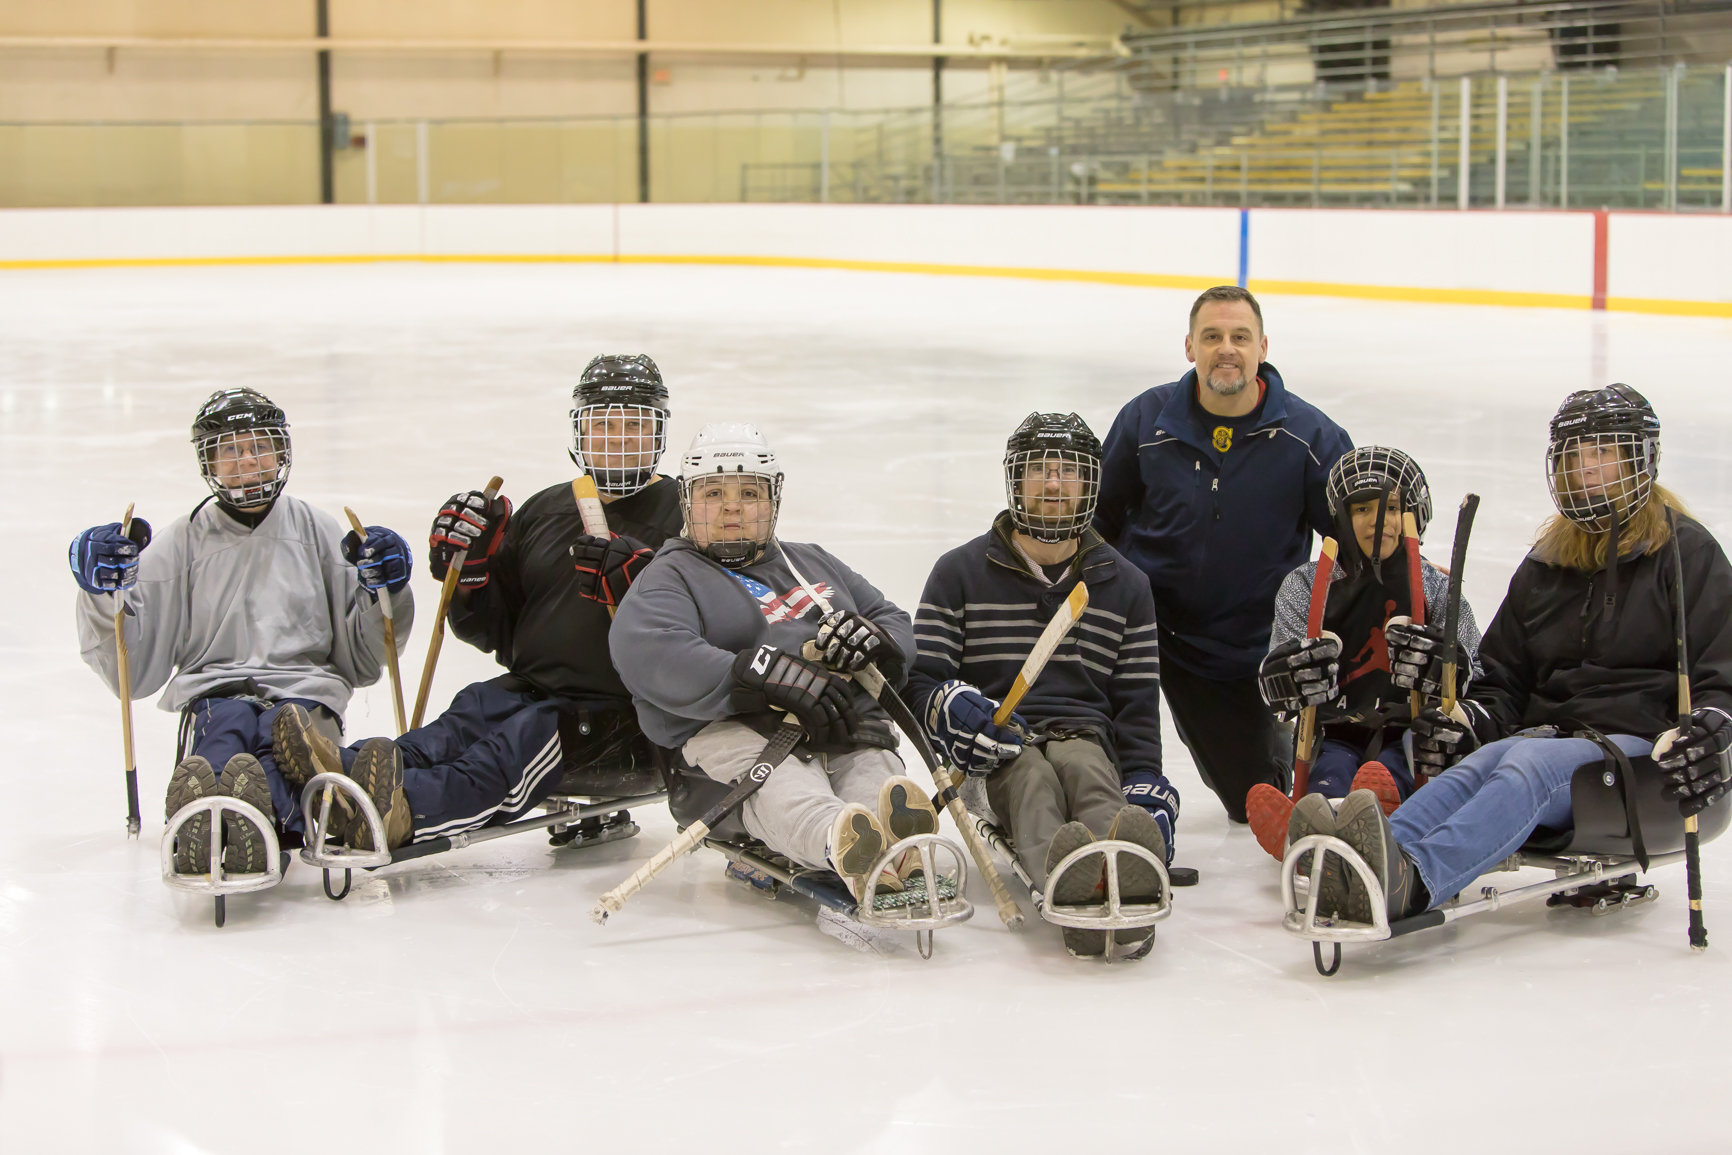 Rochester Sled Hockey Clinic with Rochester Accessible Adventures